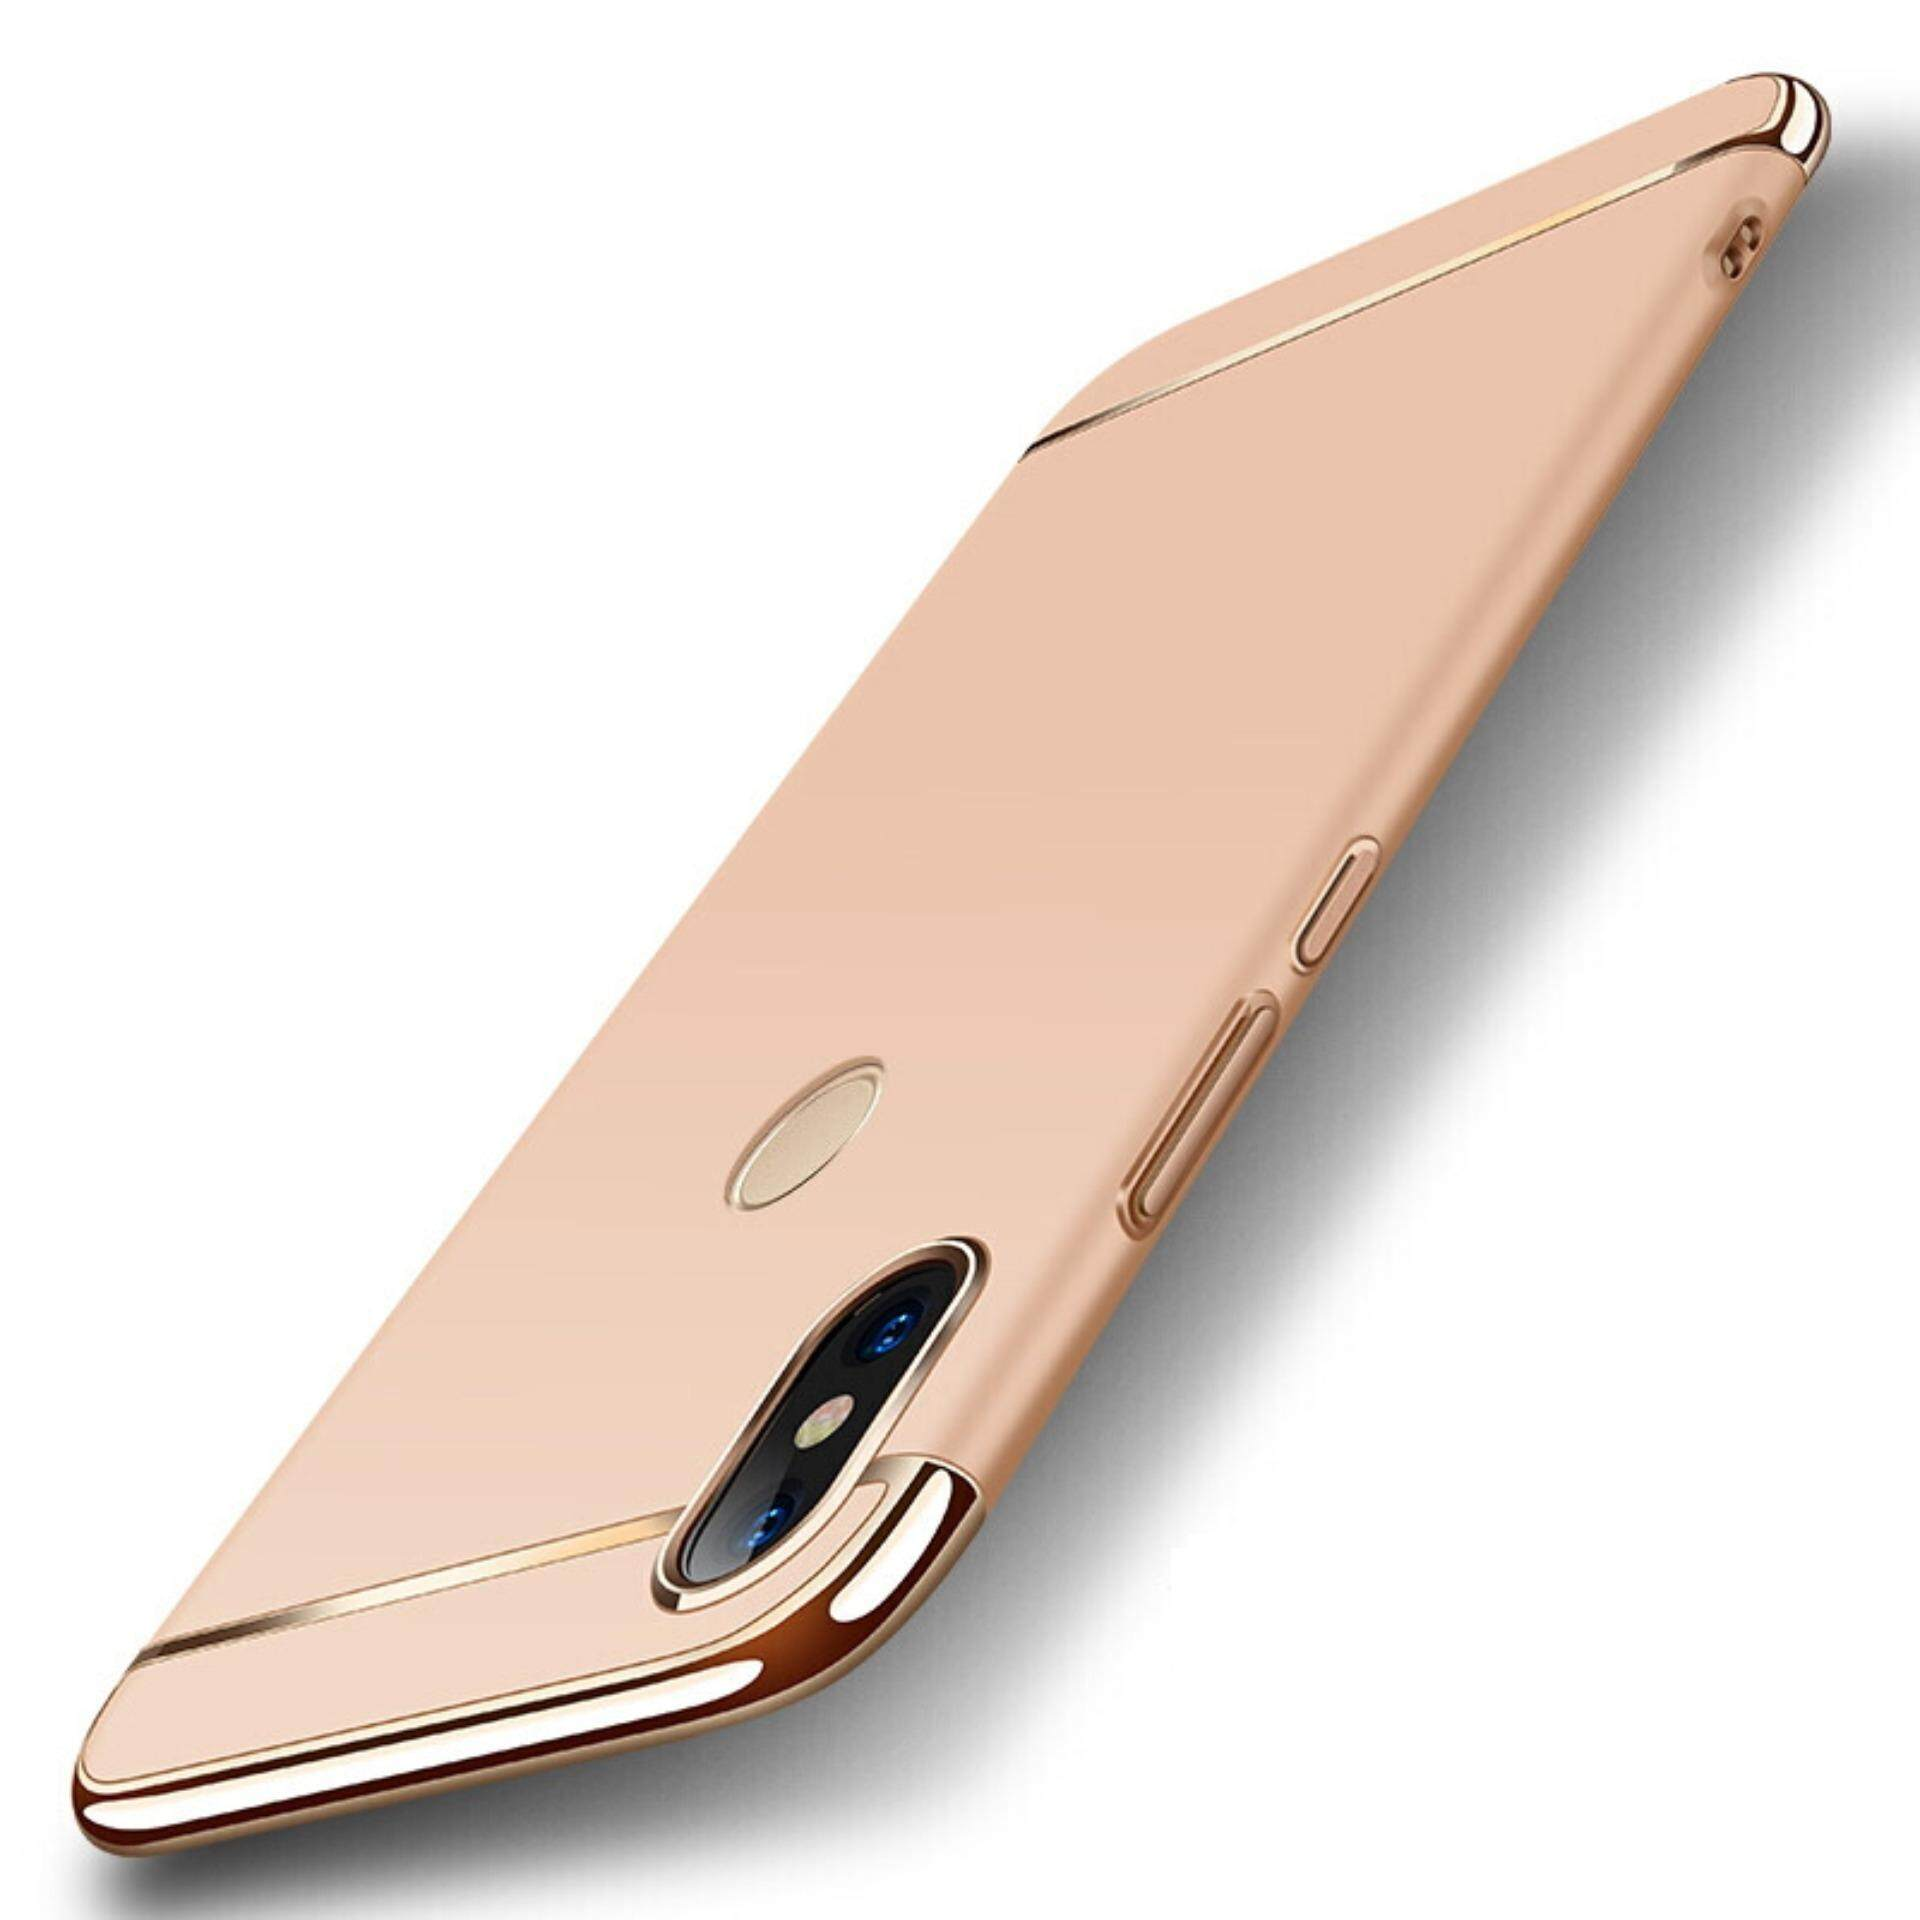 3in1 Ultra-thin Electroplated PC Back Cover Case for Xiaomi Redmi Note 5 Pro -